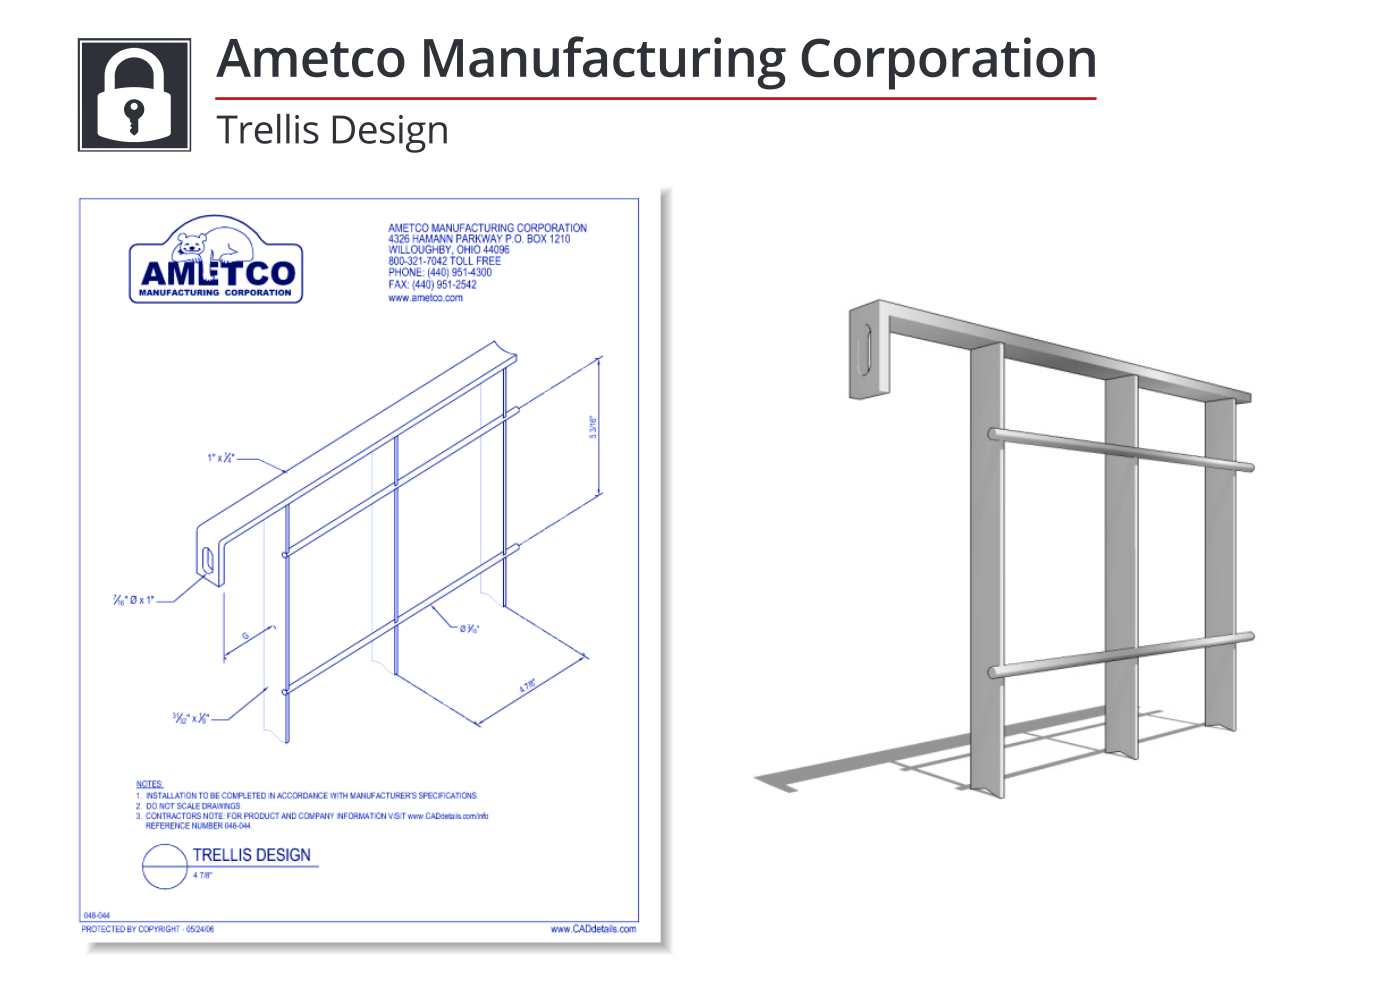 Ametco-Manufacturing-Corporation-Trellis-Design-CADdrawings.png